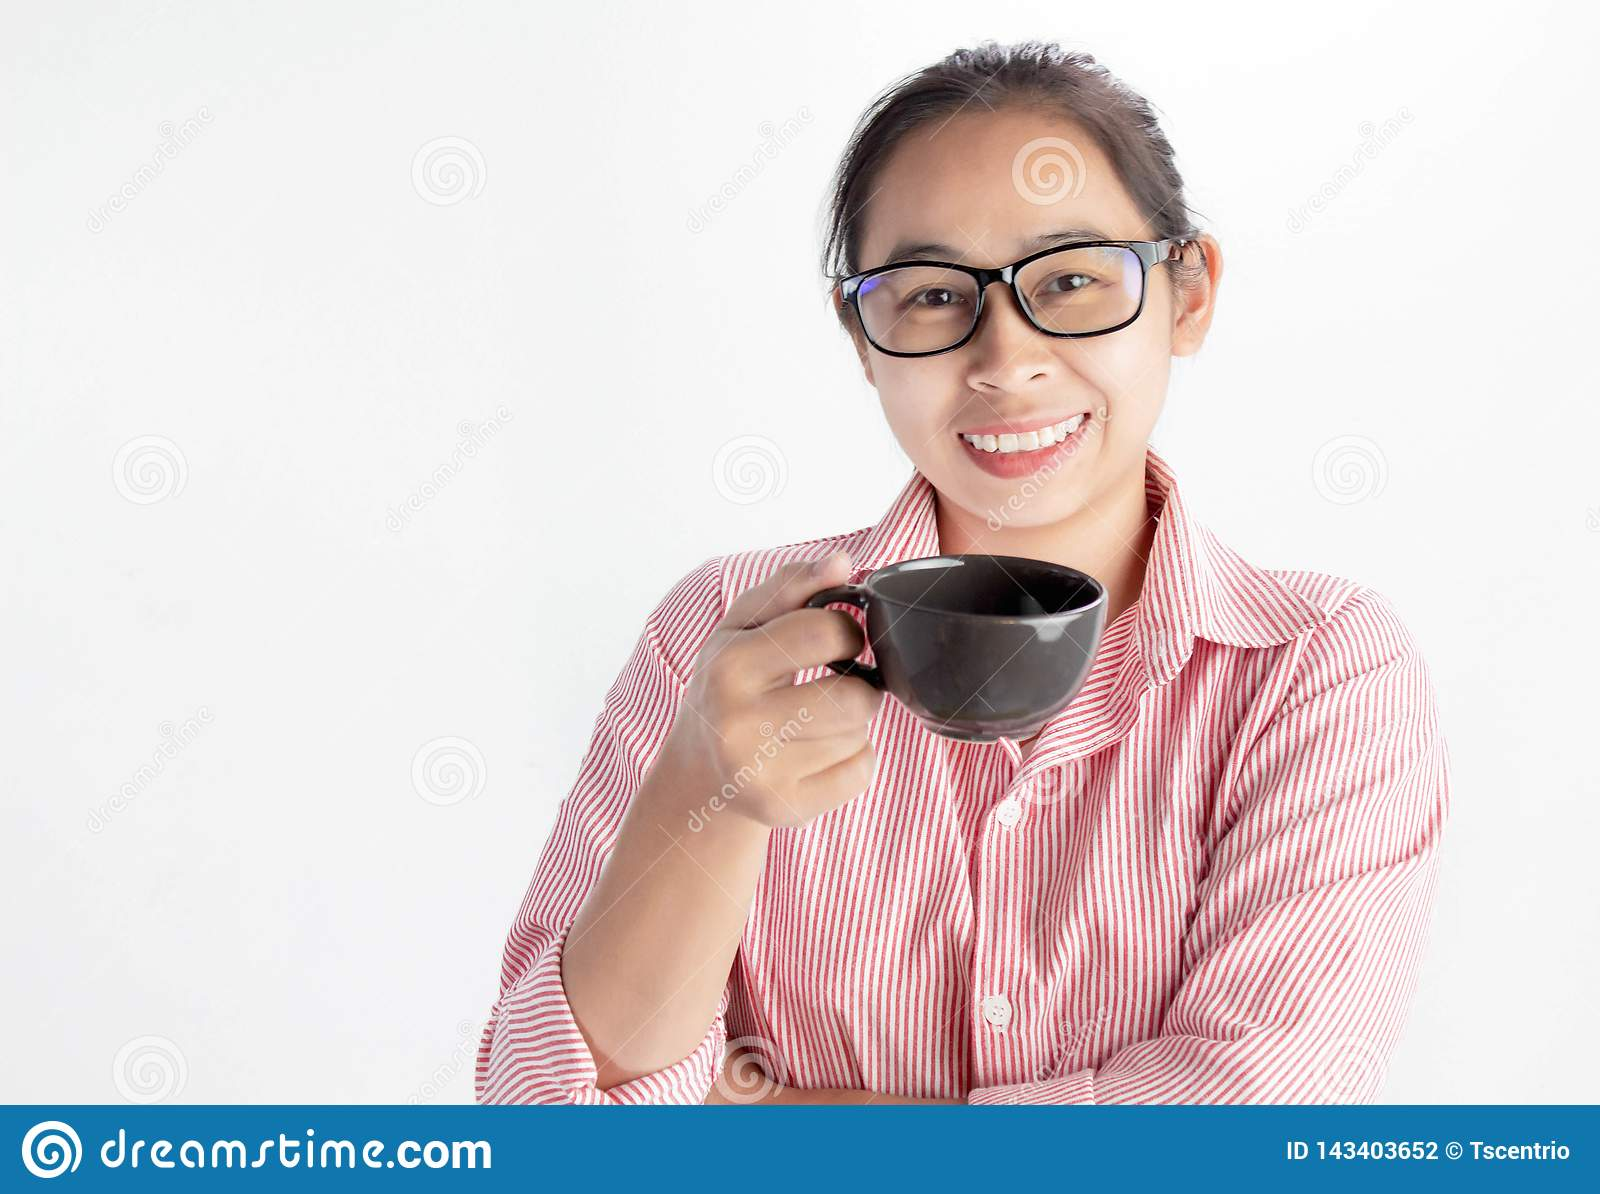 Close up portrait of confident Asian woman, wearing glasses and holding coffee cup, looking camera and smile, standing over white